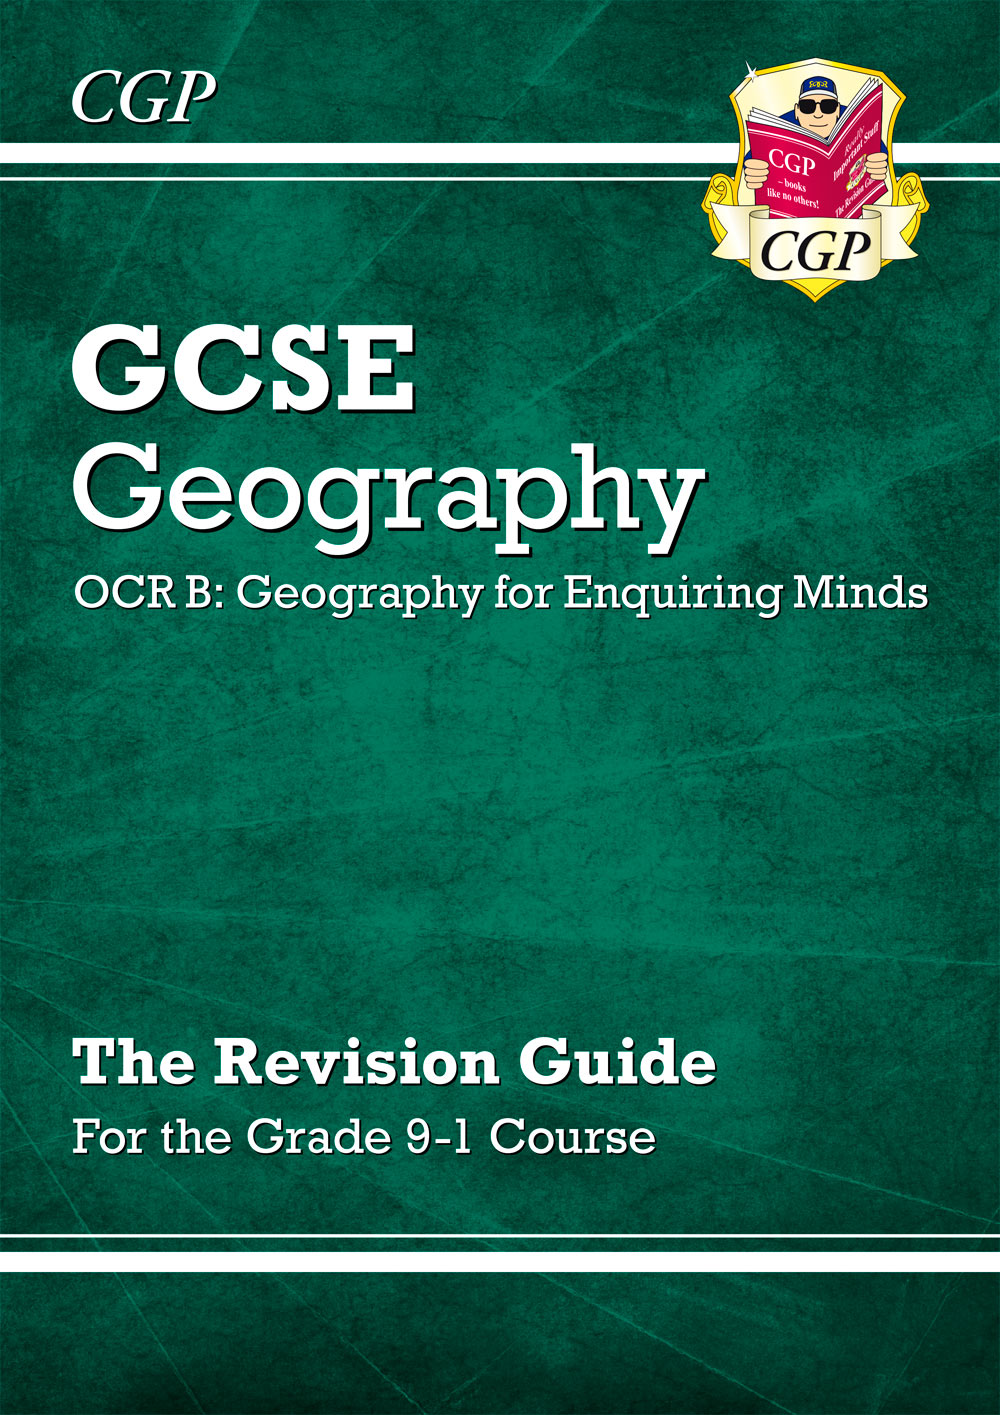 GRR44 - Grade 9-1 GCSE Geography OCR B: Geography for Enquiring Minds - Revision Guide